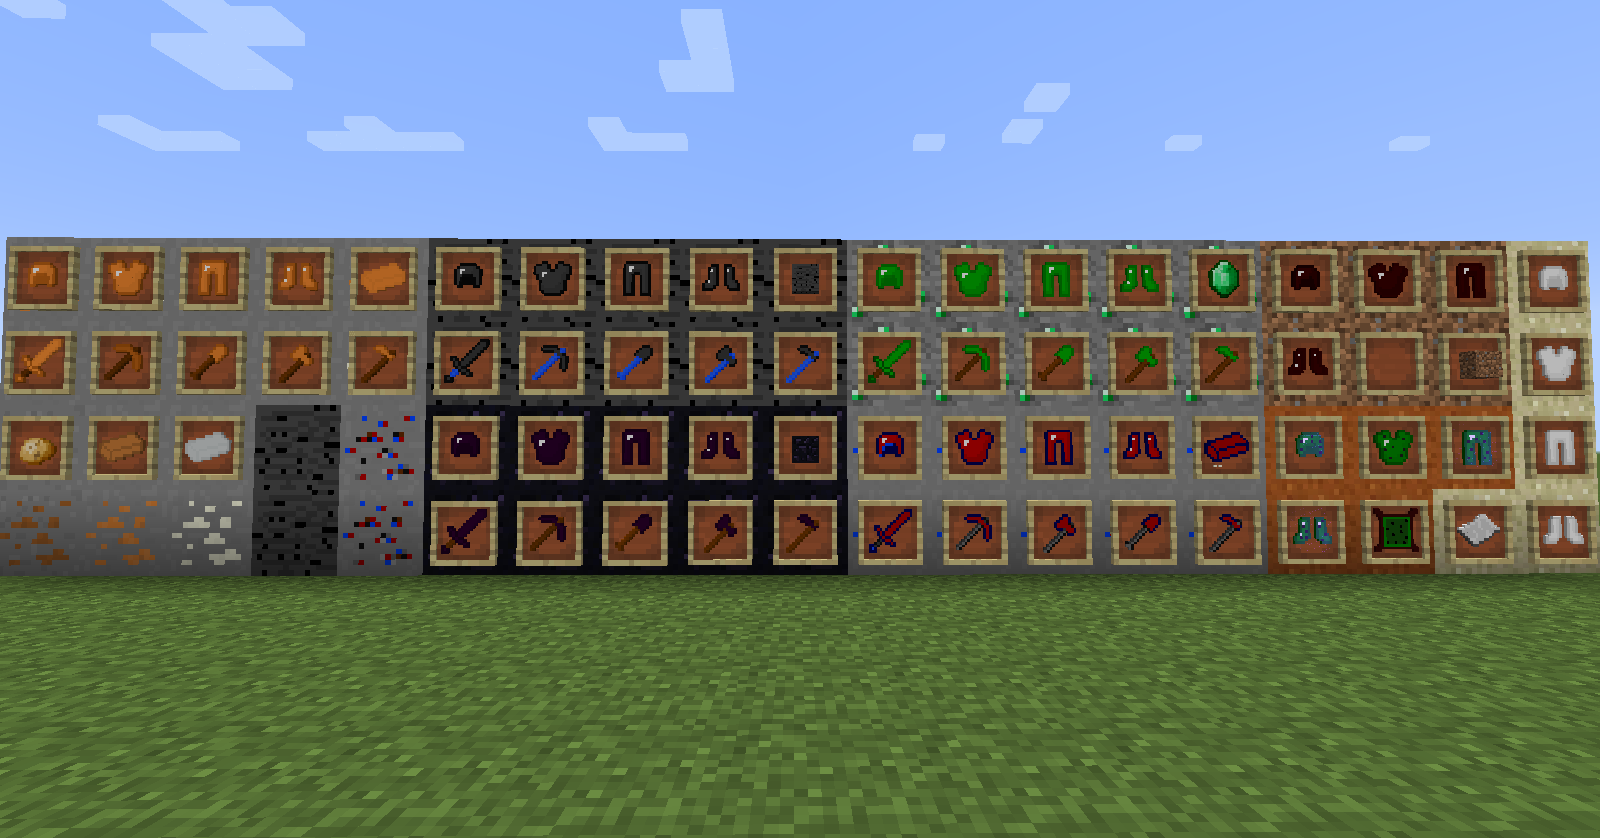 Protection Plus Mod 1 14 4 1 13 2 1 12 2 1 11 2 1 10 2 1 8 9 1 7 10 Minecraft Modpacks All Minecraft Cool Minecraft Minecraft